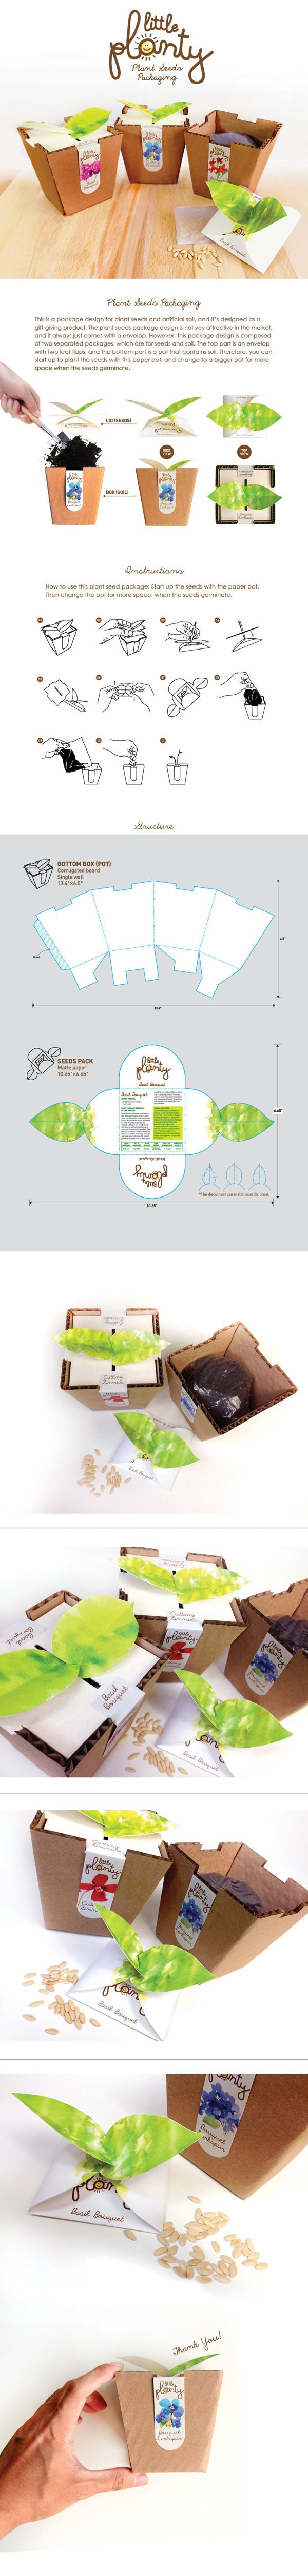 Little Planty- Plant seeds package design by CHENGWEN fung, via Behance